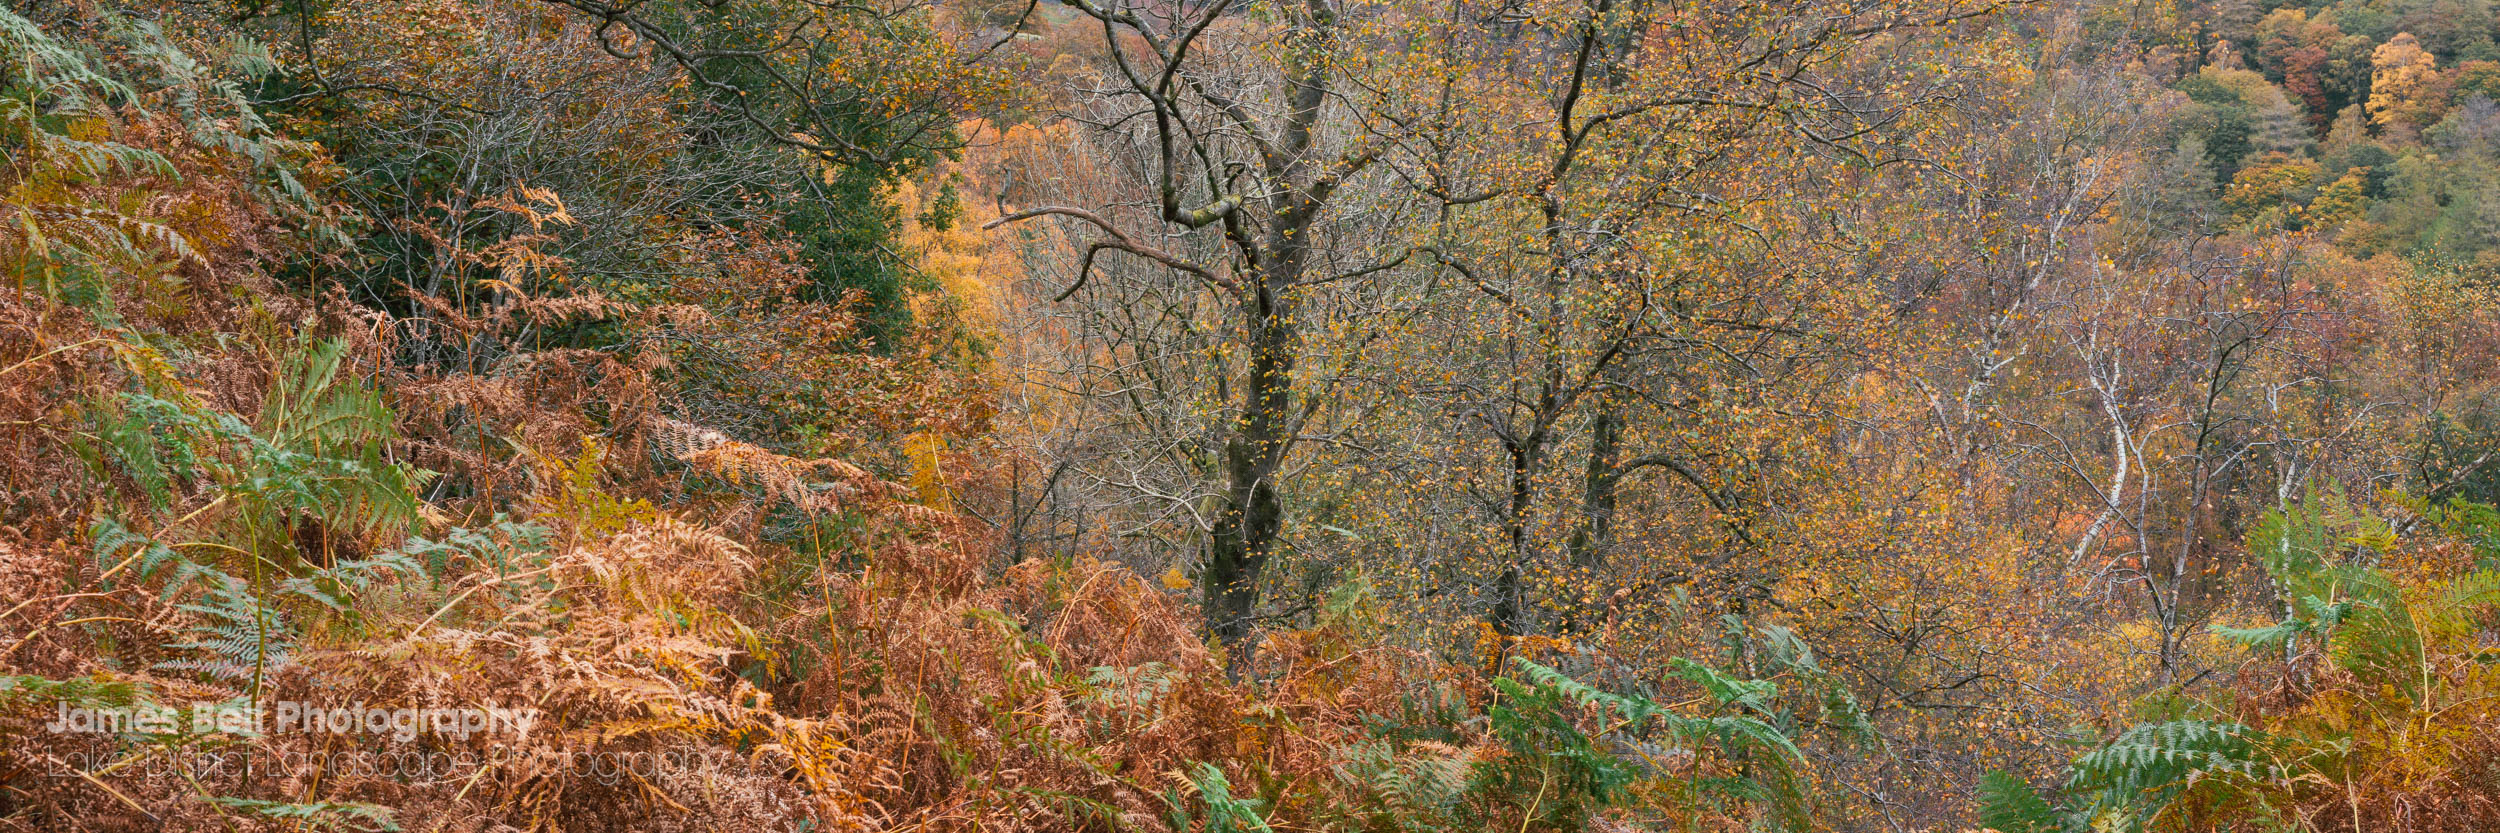 Autumn on Holme Fell in the Lake District